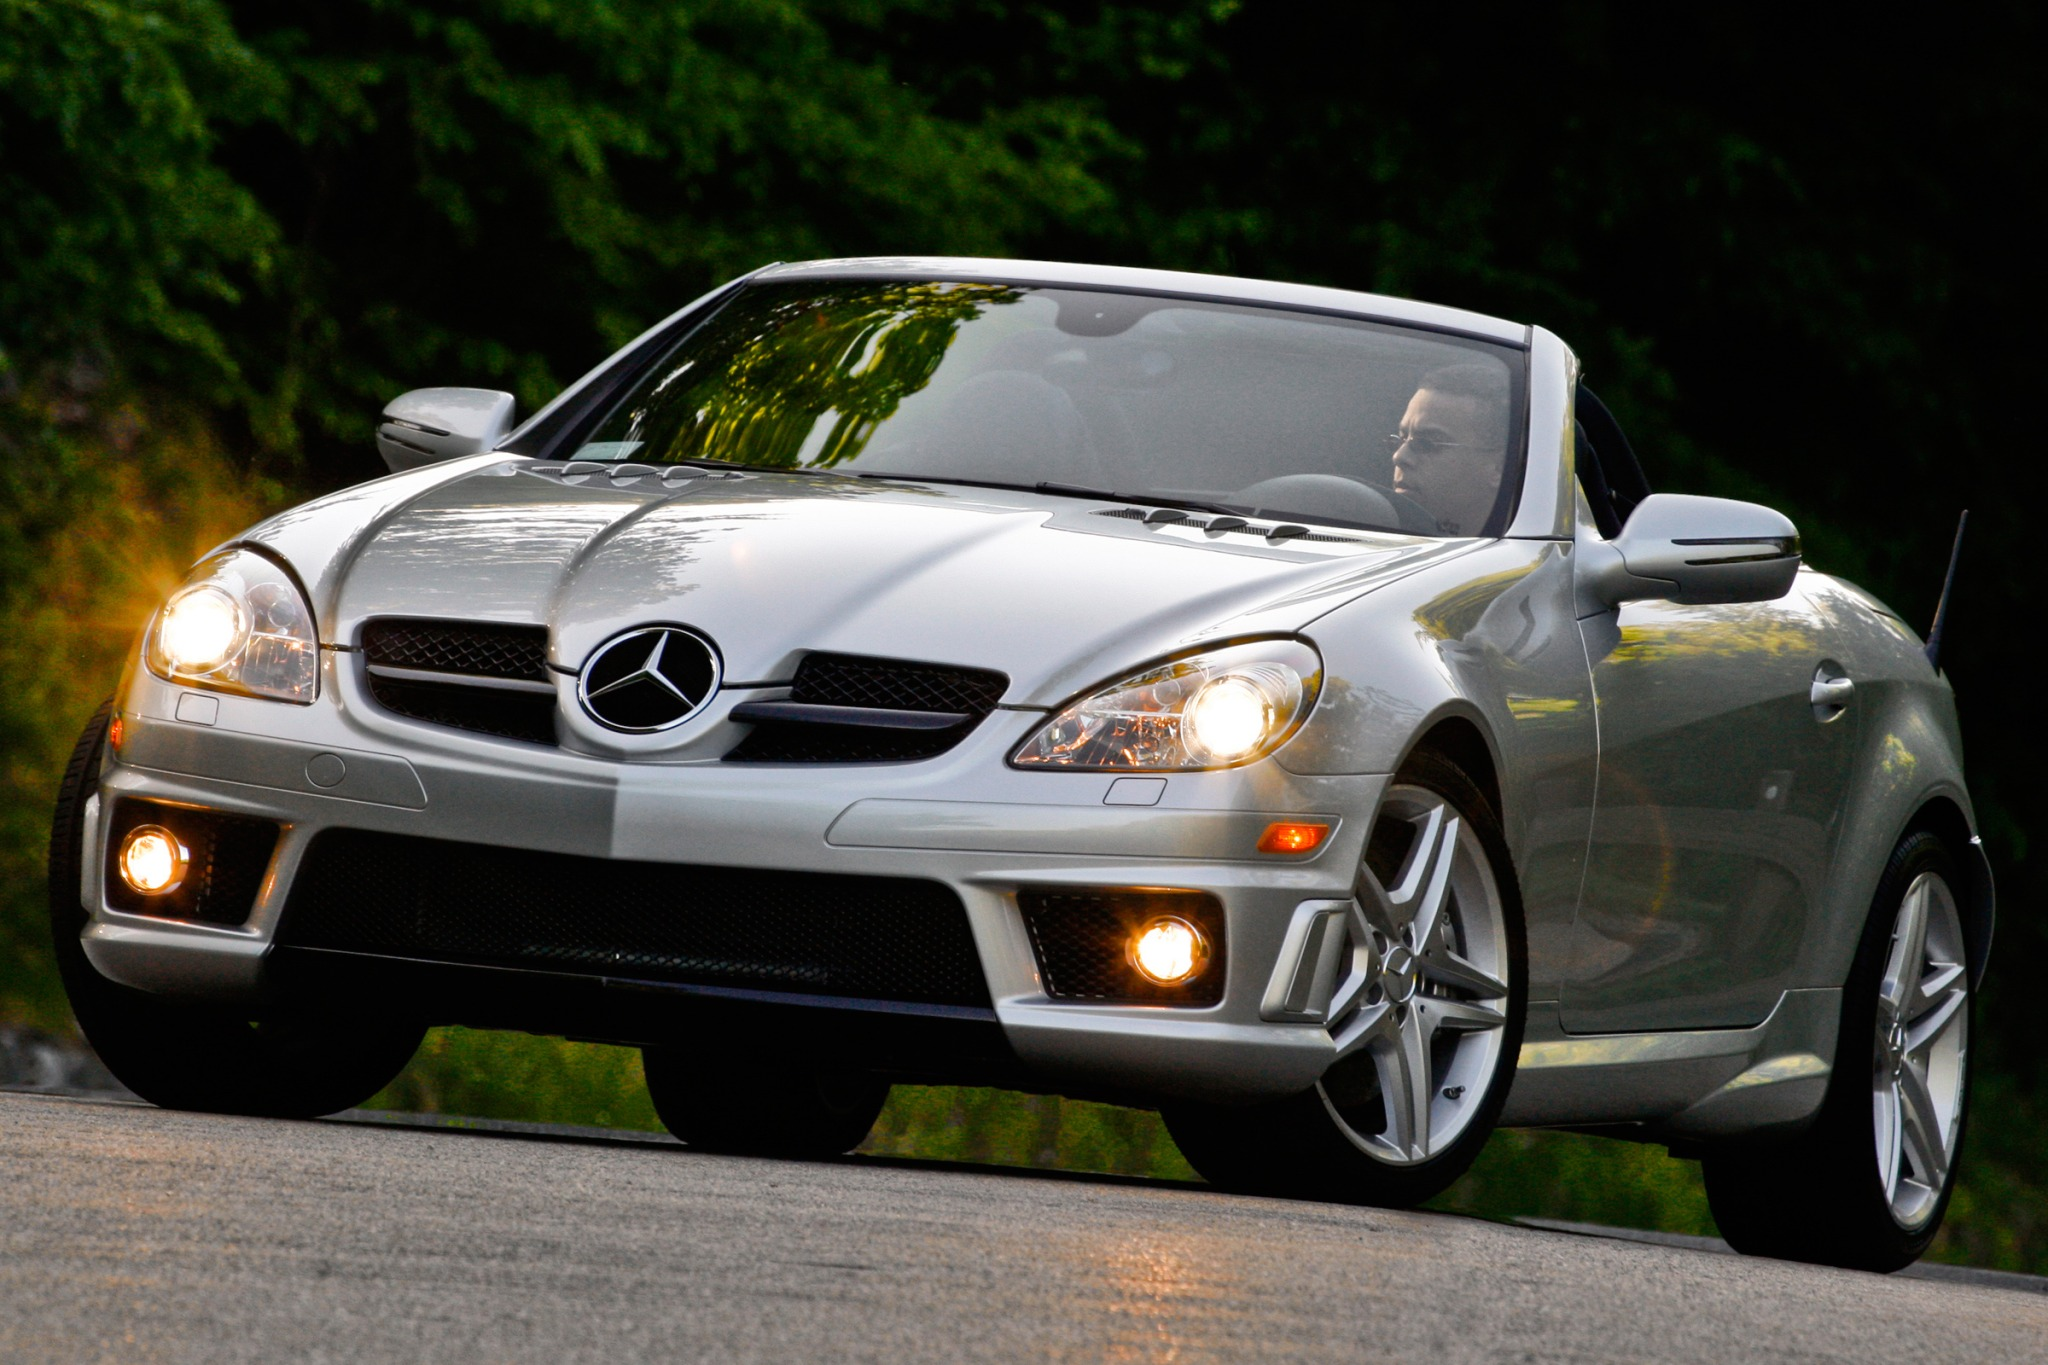 my first bloggy experience 2010 mercedes benz slk 55 amg r171 compact luxury roadster. Black Bedroom Furniture Sets. Home Design Ideas